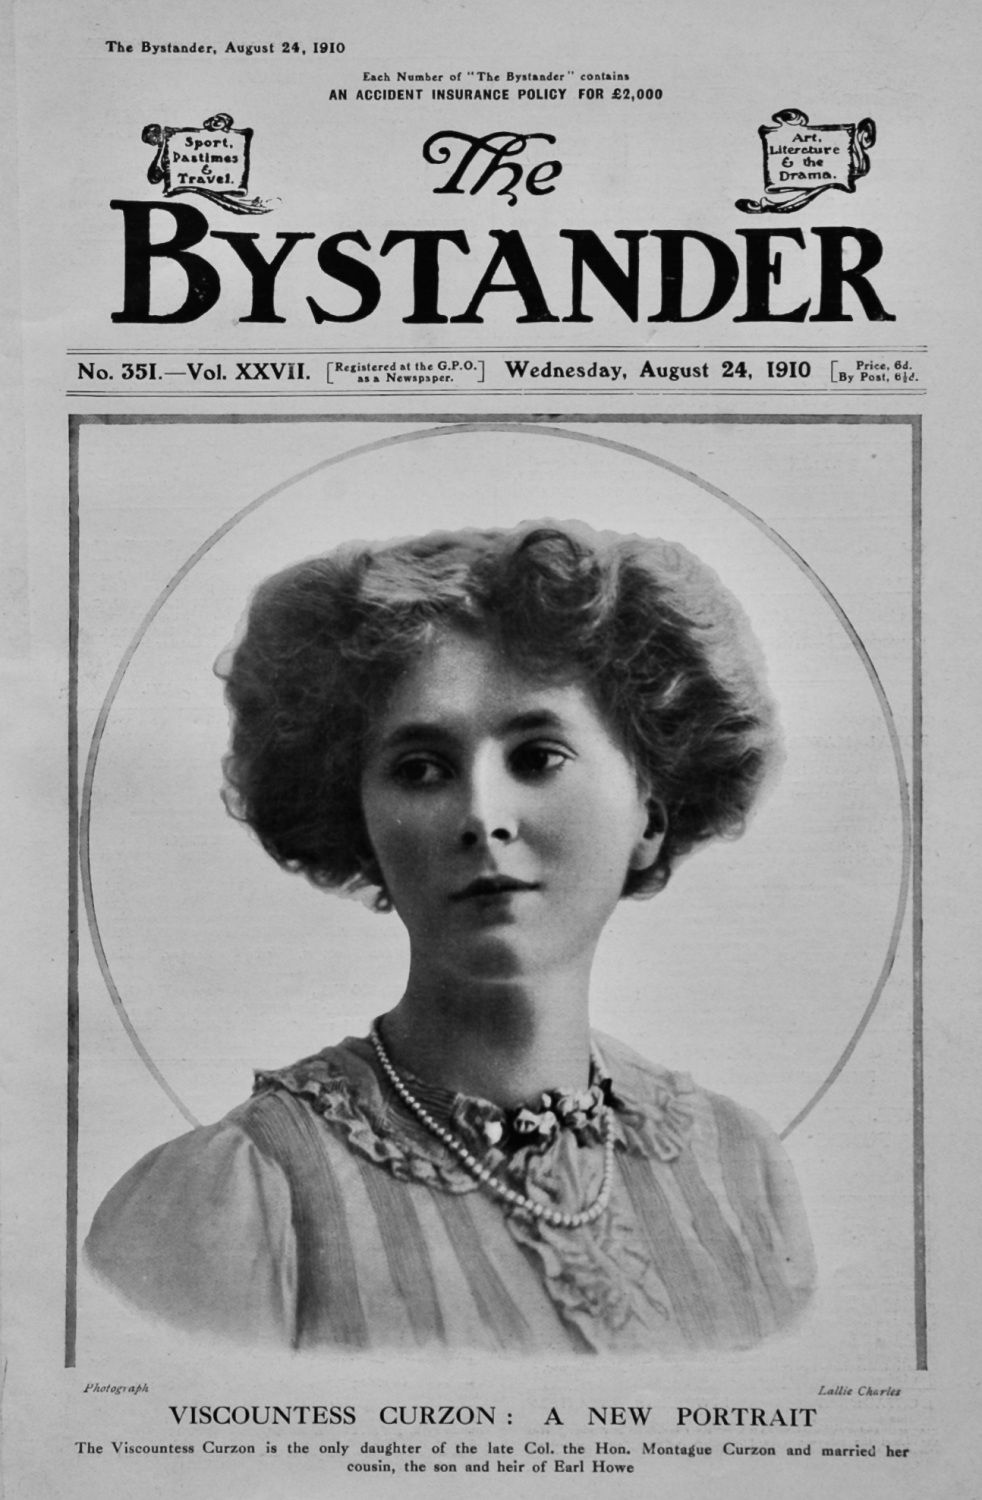 The Bystander Aug 24th 1910.